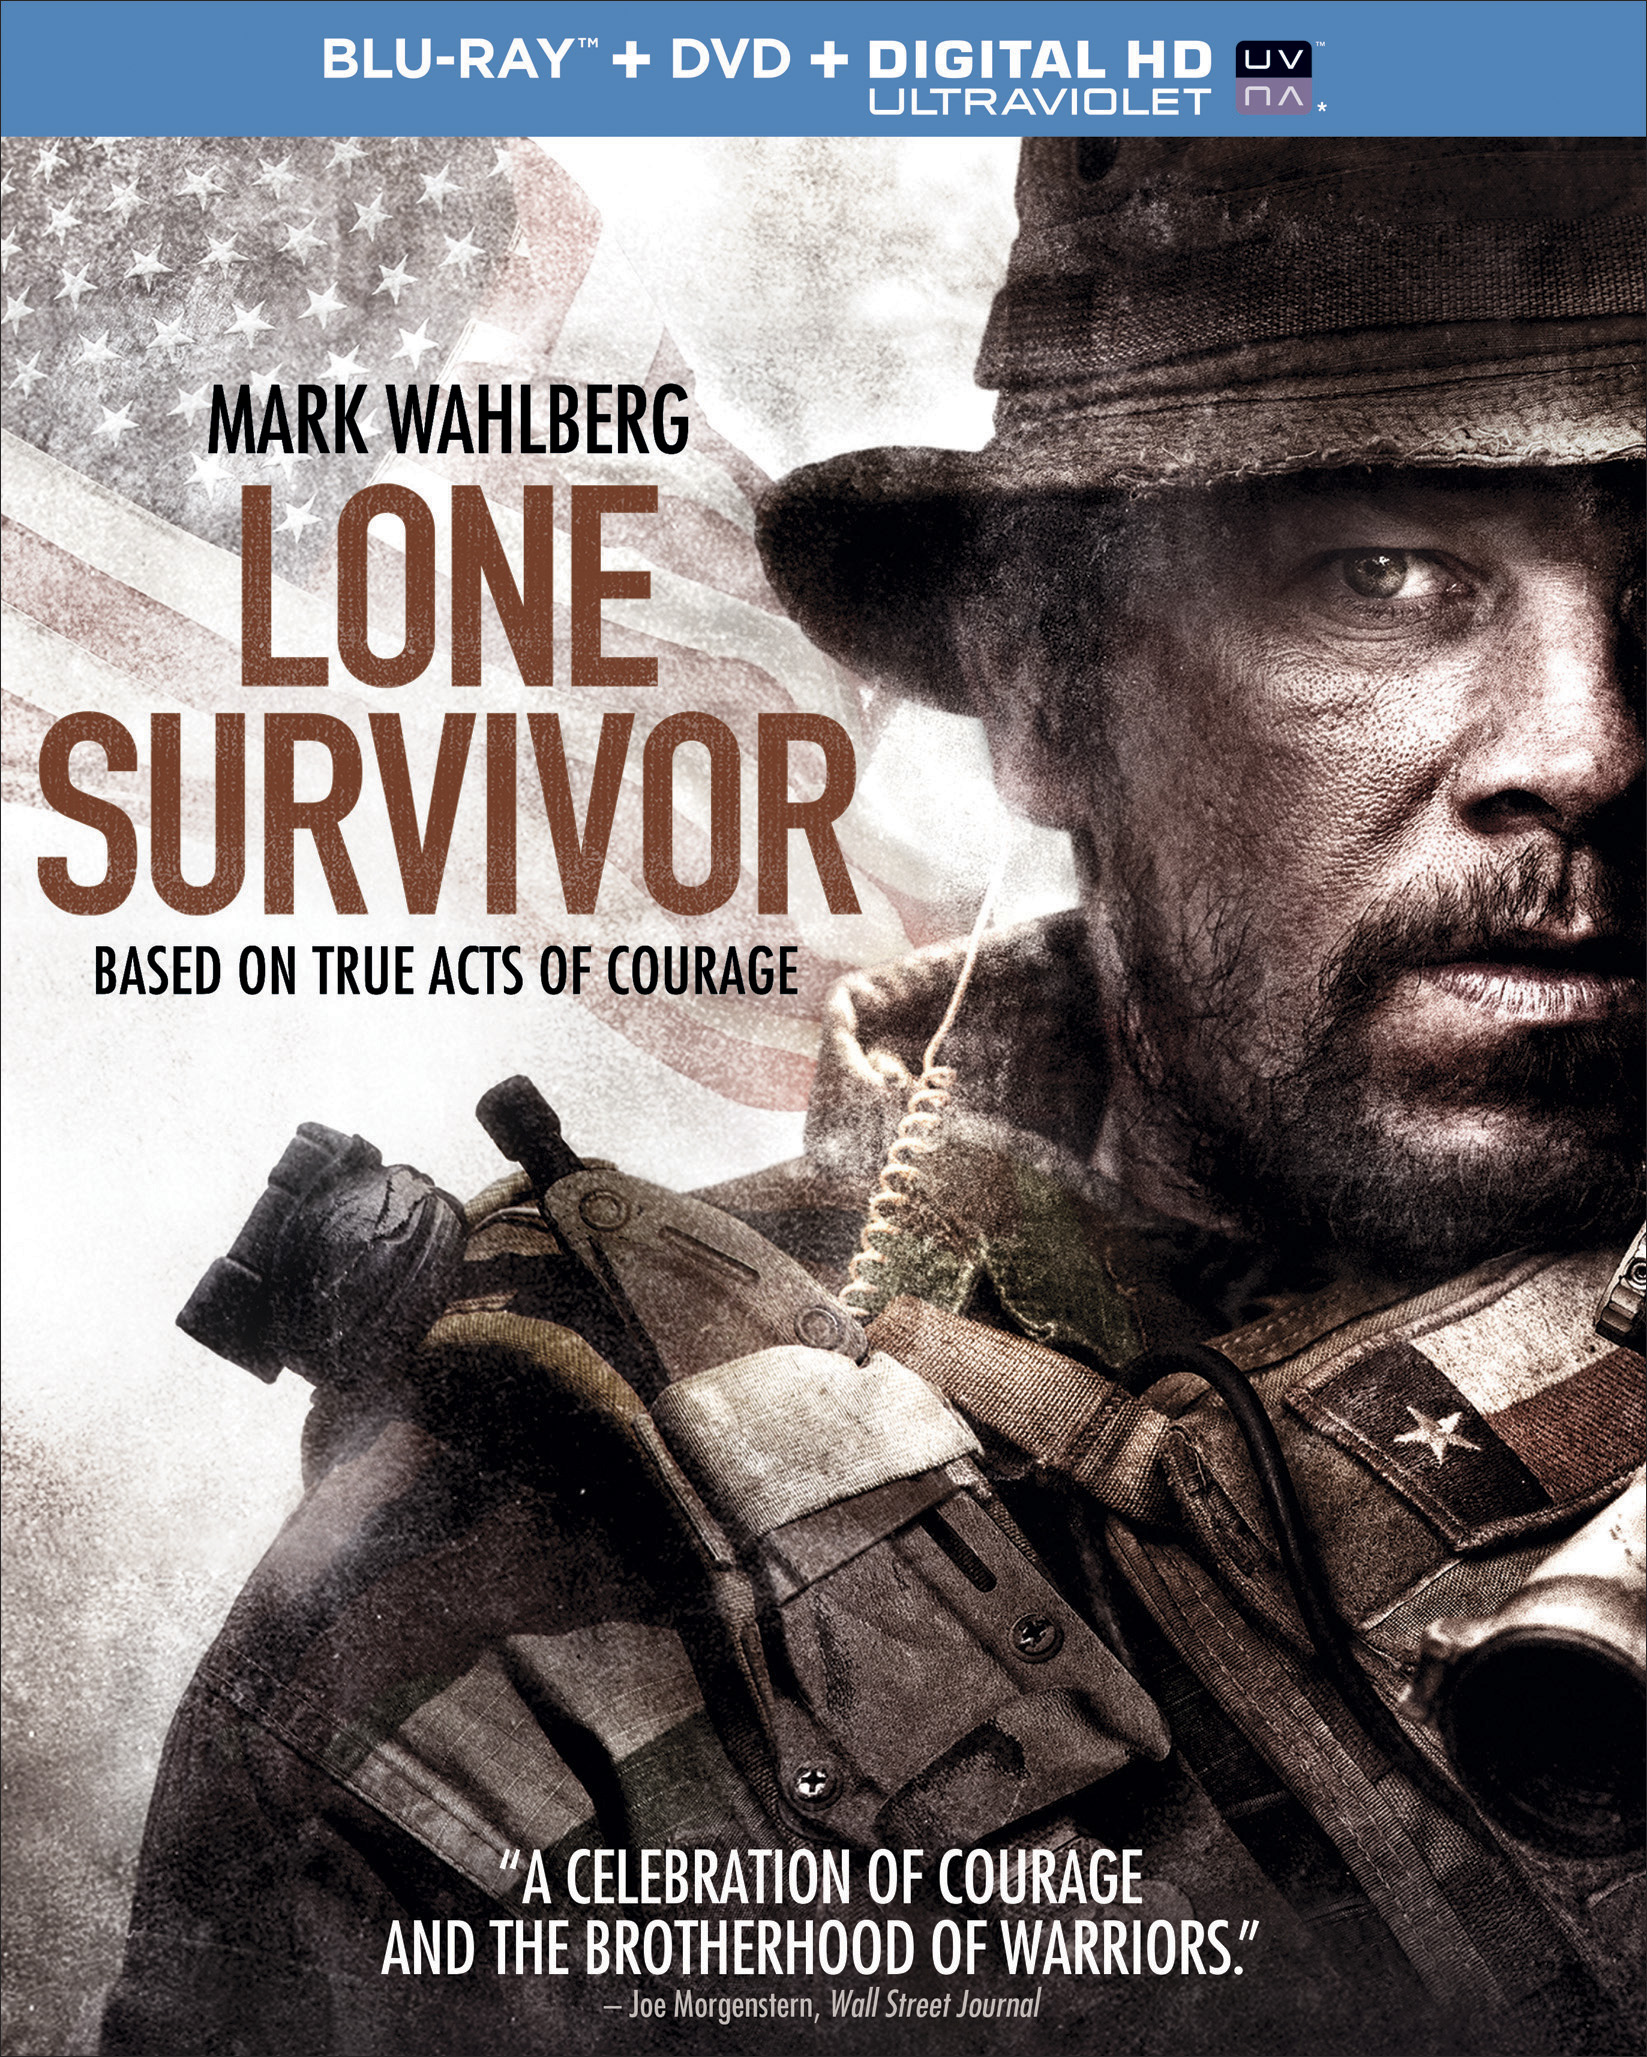 Lone Survivor Blu-ray Review